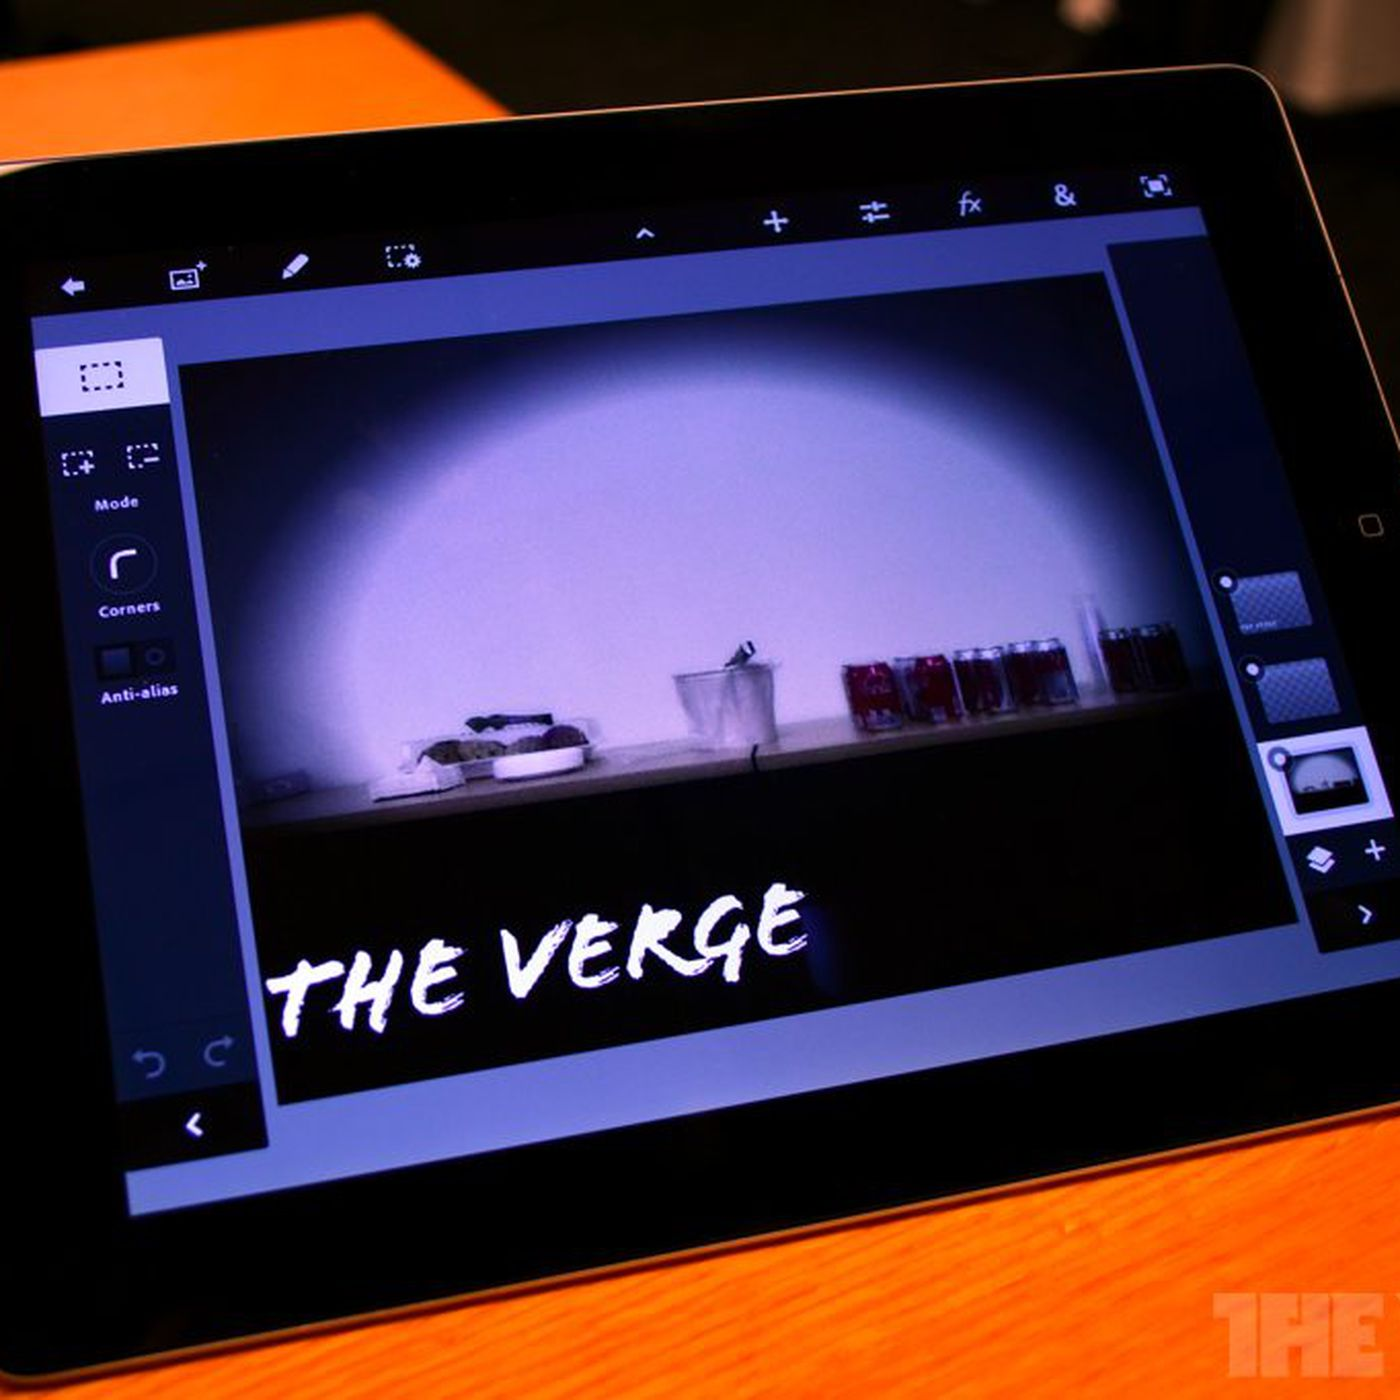 Adobe Photoshop Touch for iPad: the future of content